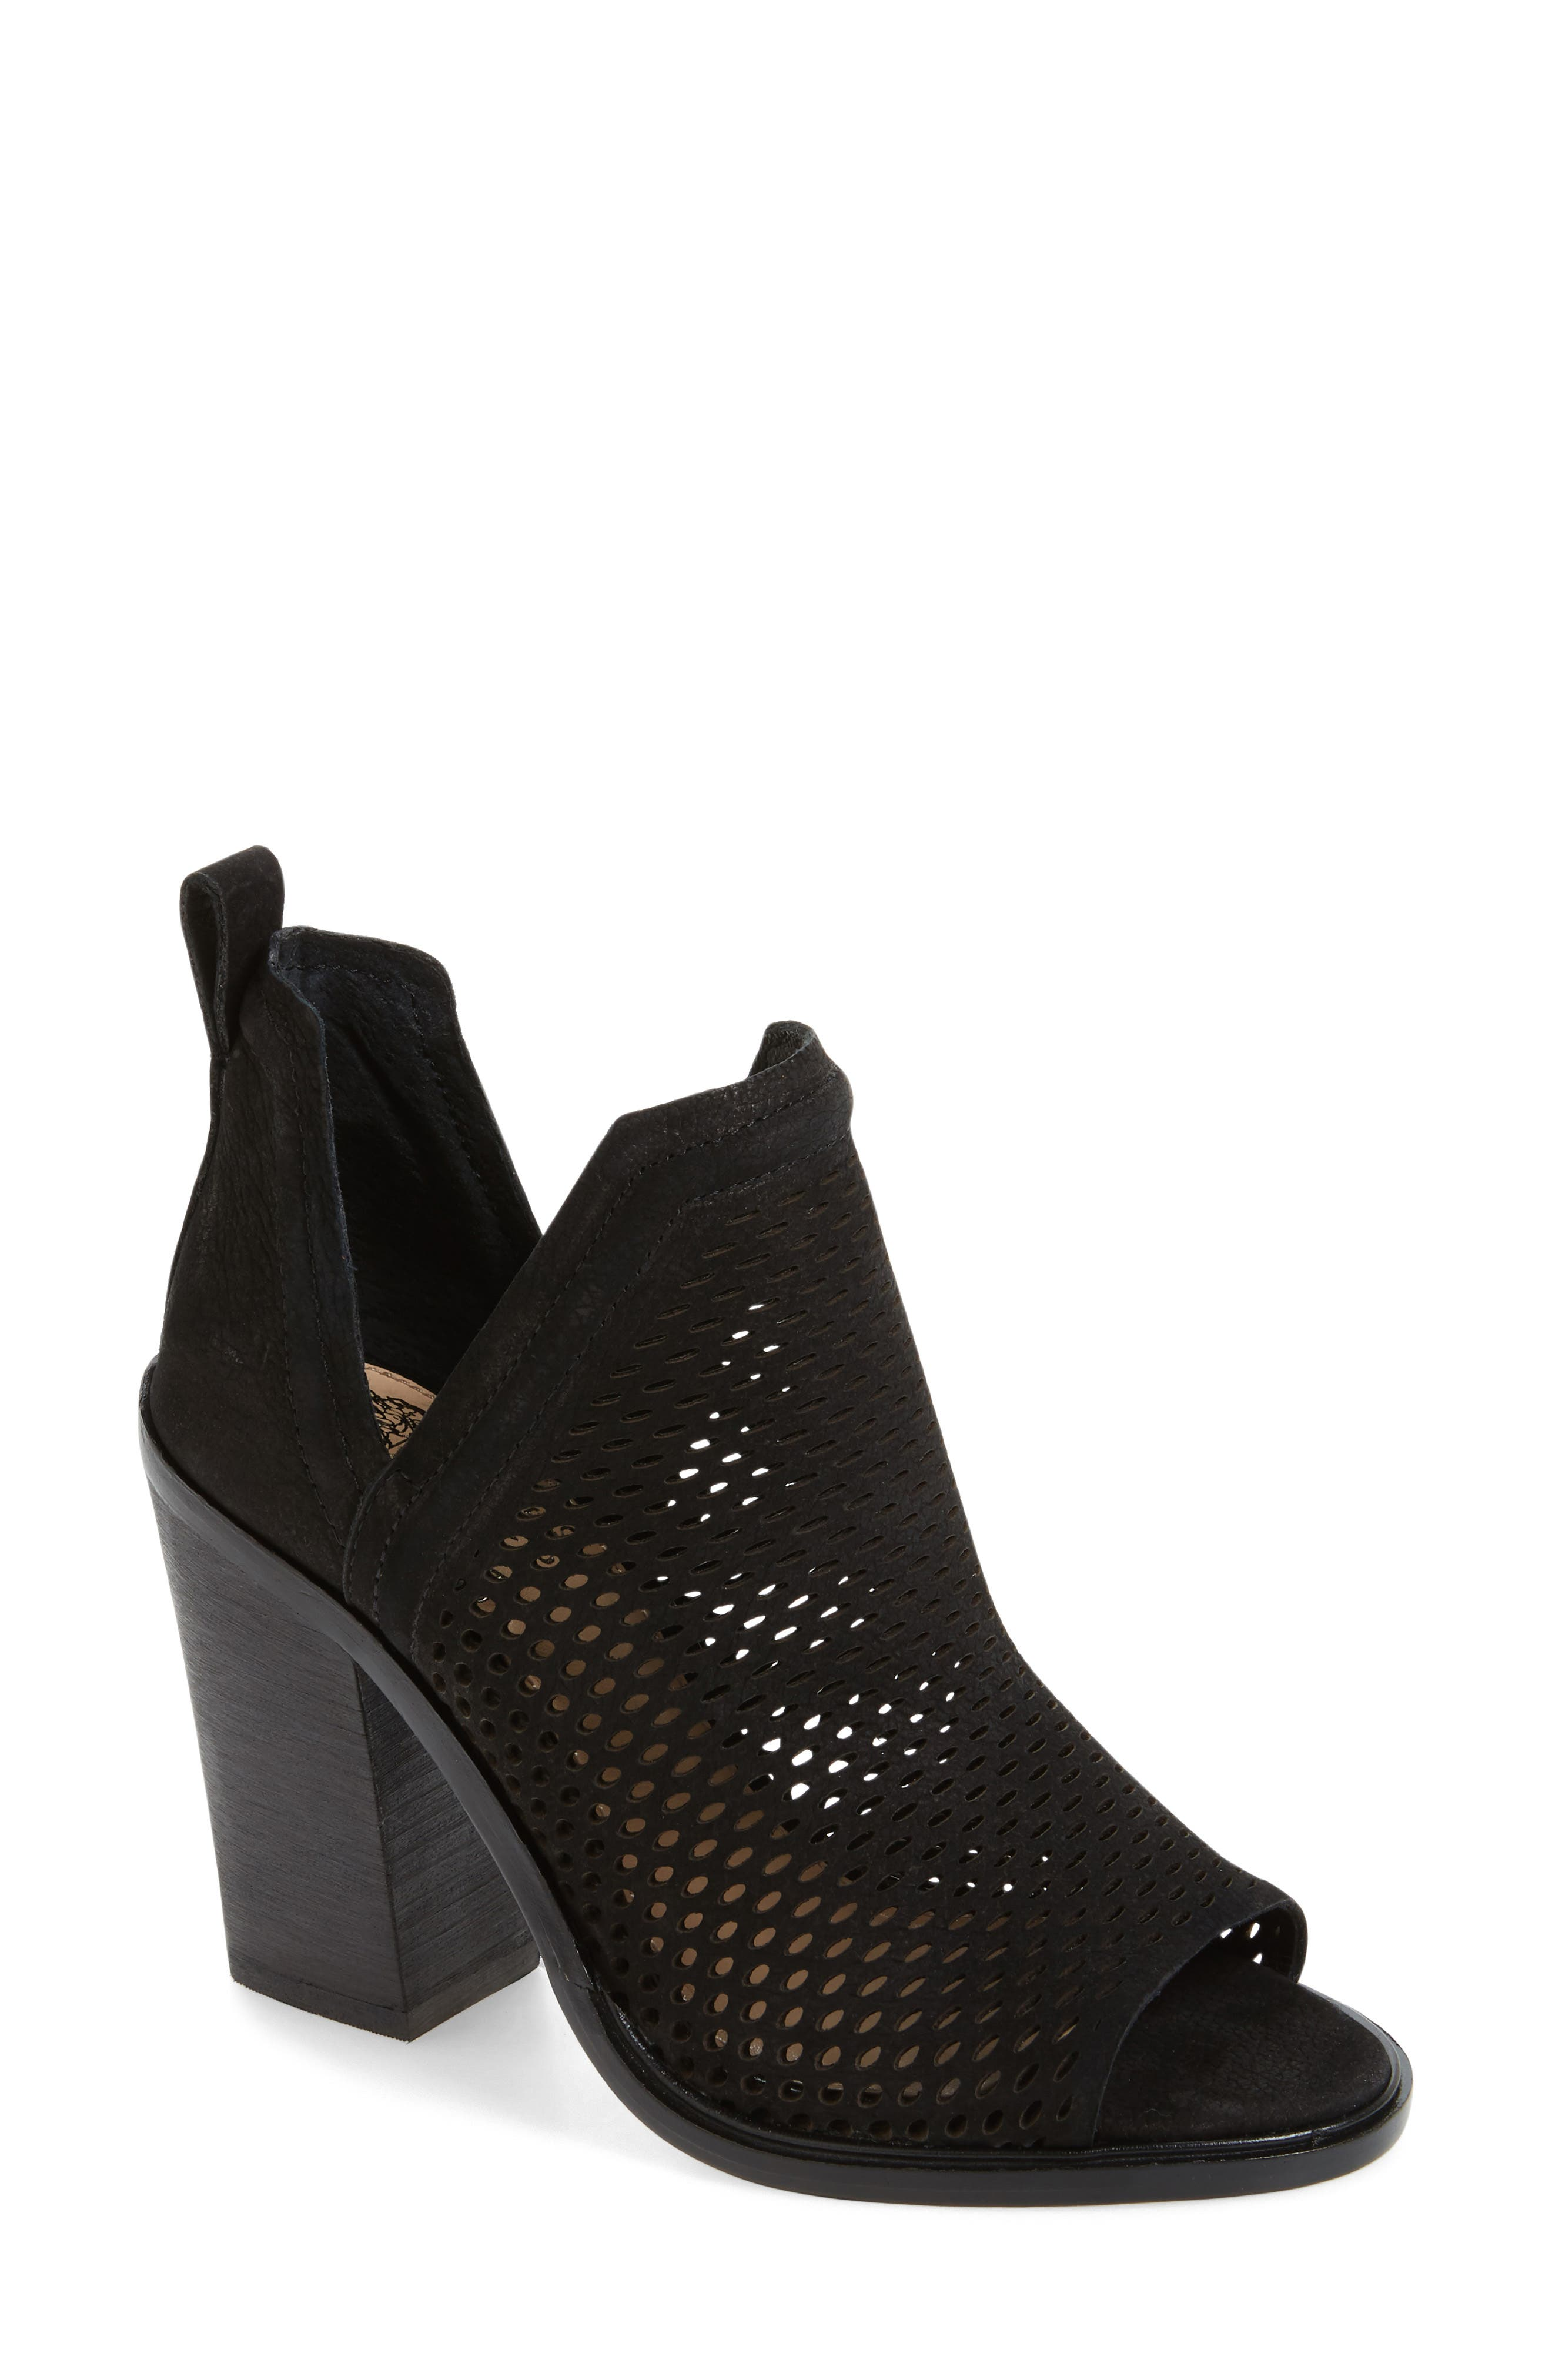 Kensa Peep Toe Bootie,                             Main thumbnail 1, color,                             001